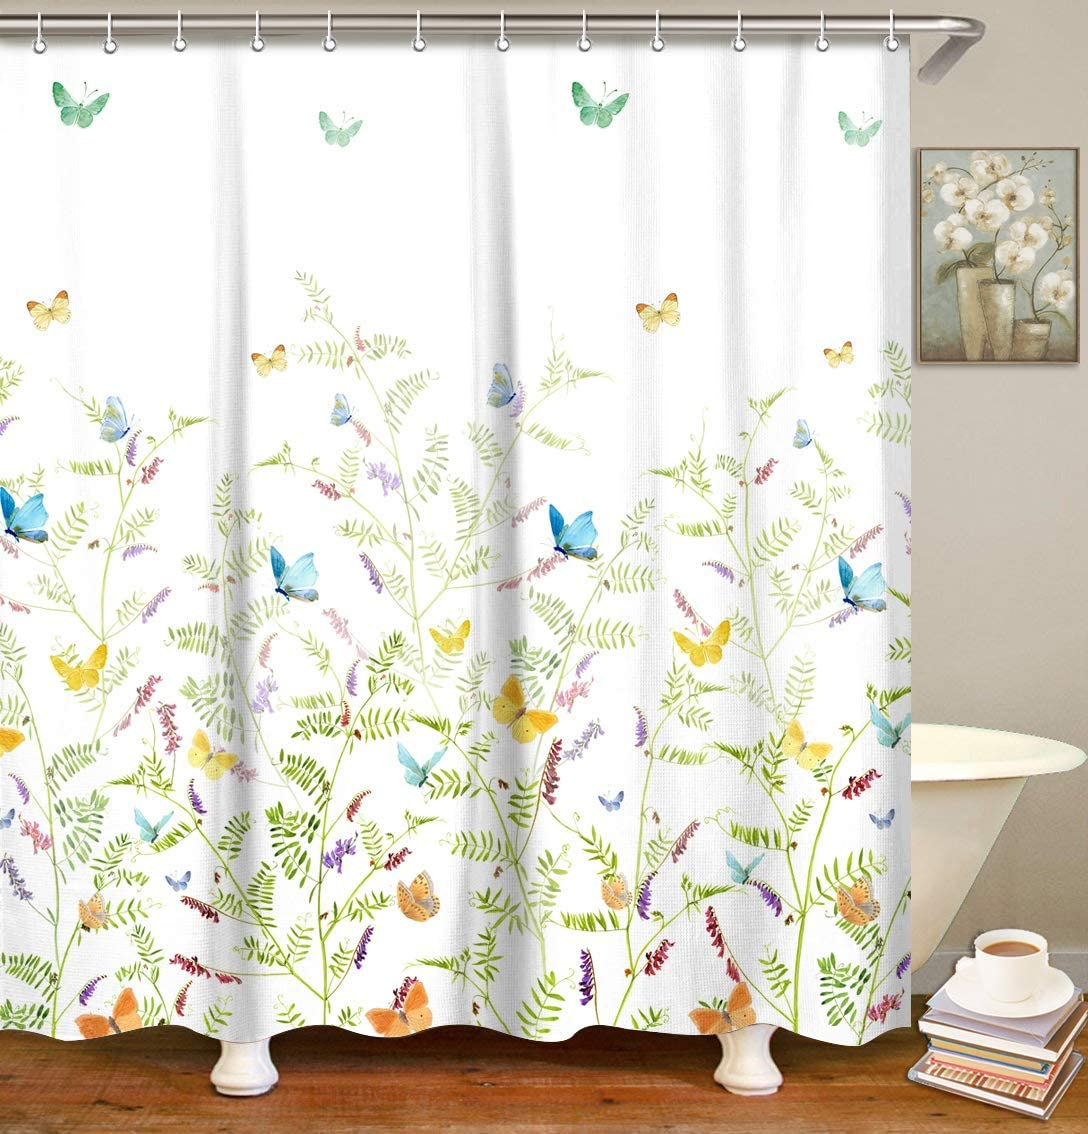 """LIVILAN Fabric Floral Butterfly Shower Curtain Set with 12 Hooks, Decorative Bath Curtain Modern Bathroom Accessories, Machine Washable, Colorful Flowers and Green Leaves Pattern, 72"""" X 72"""""""